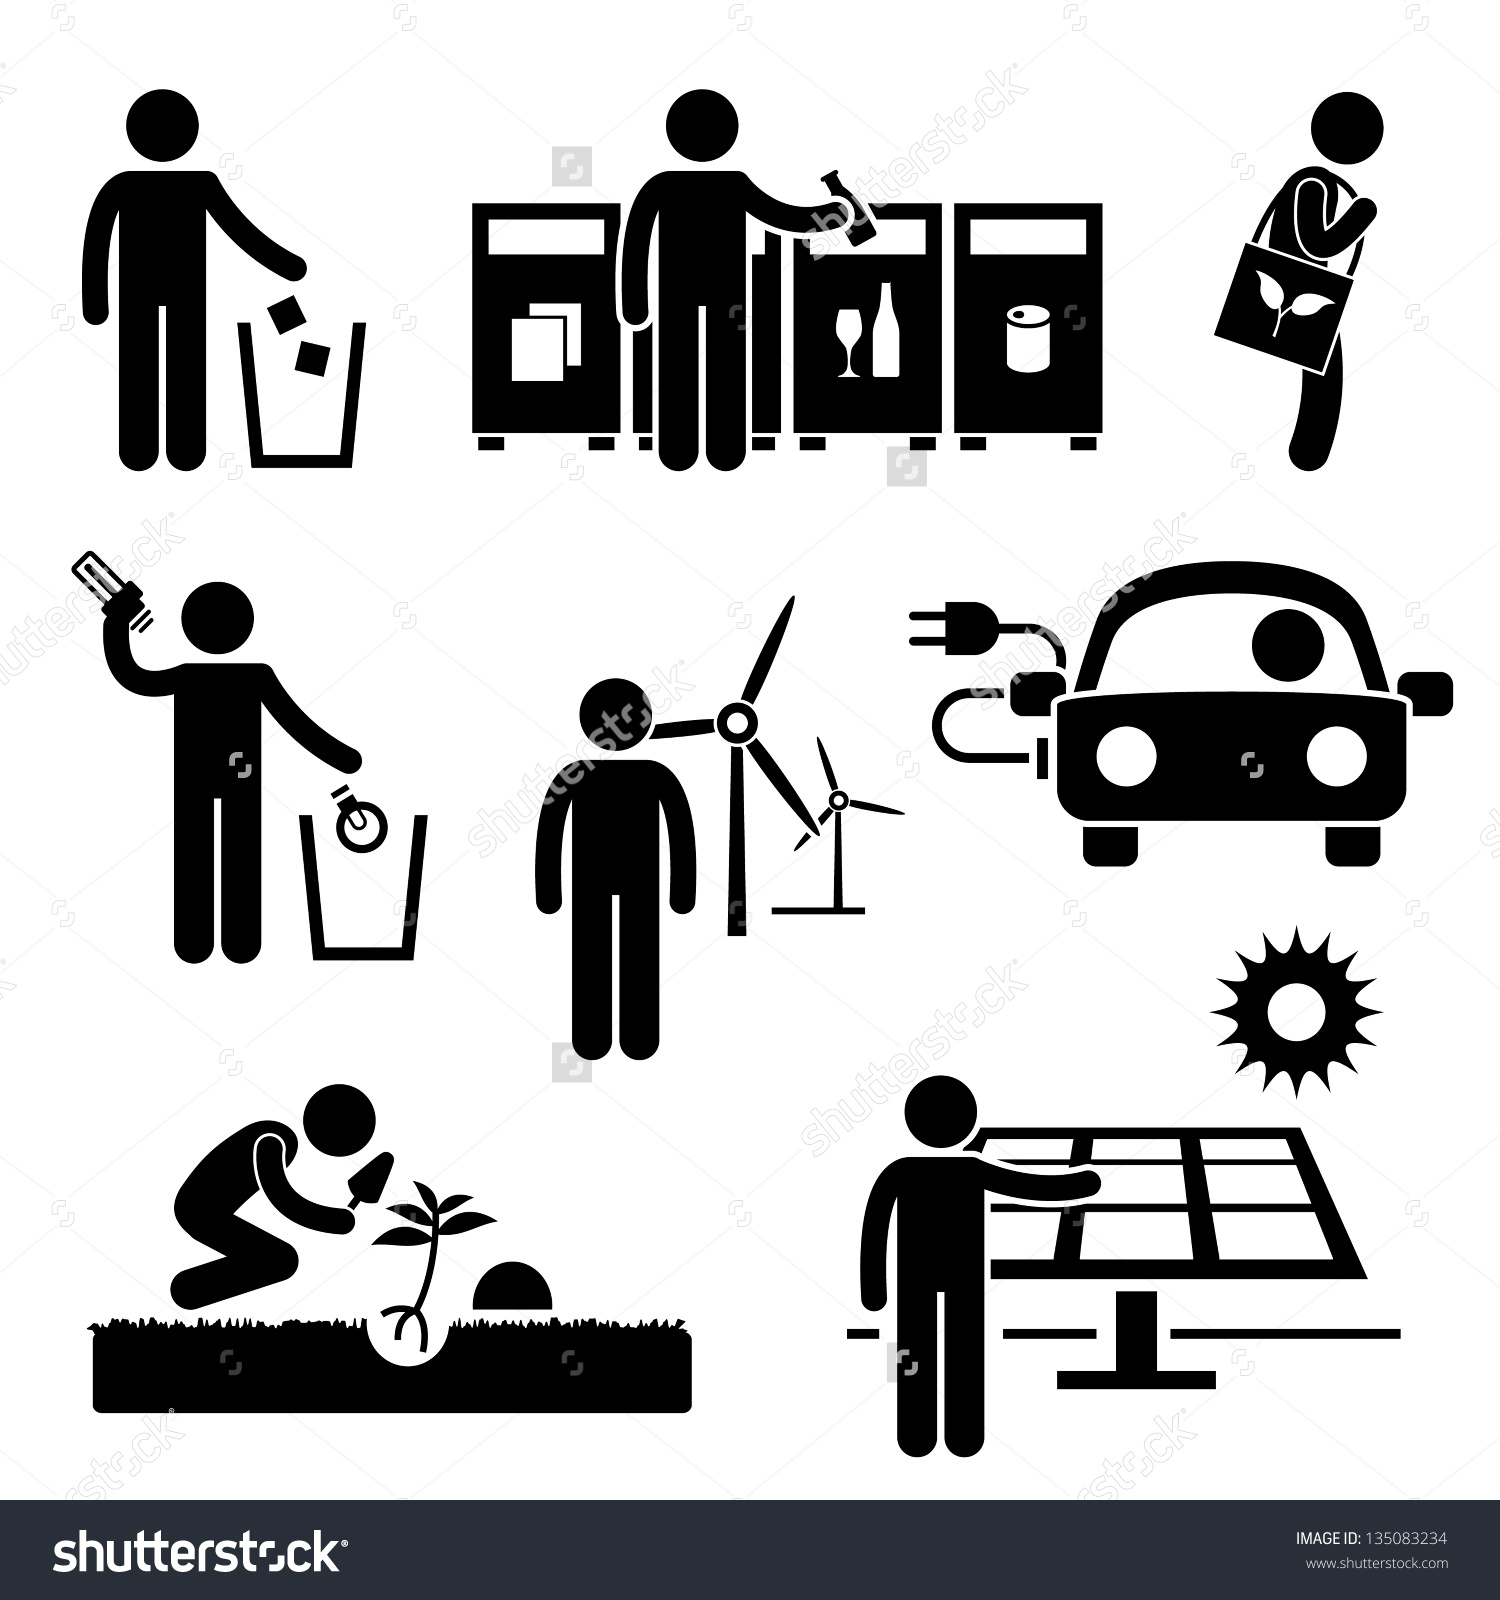 Save energy save environment clipart jpg download Man People Recycle Green Environment Energy Stock Vector 135083234 ... jpg download